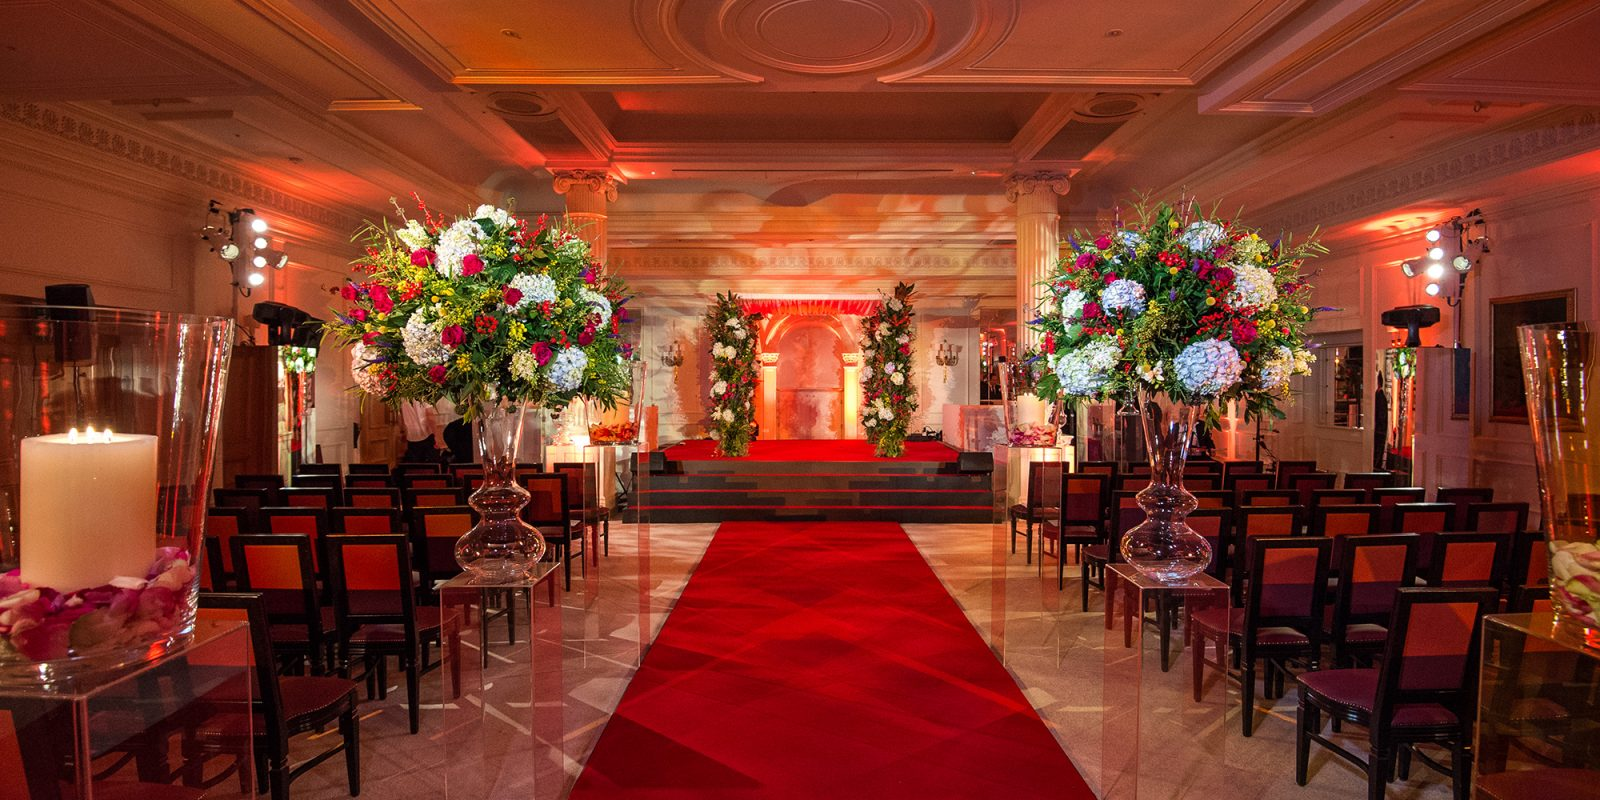 JustSeventy Bespoke Red Wedding at The Savoy Hotel